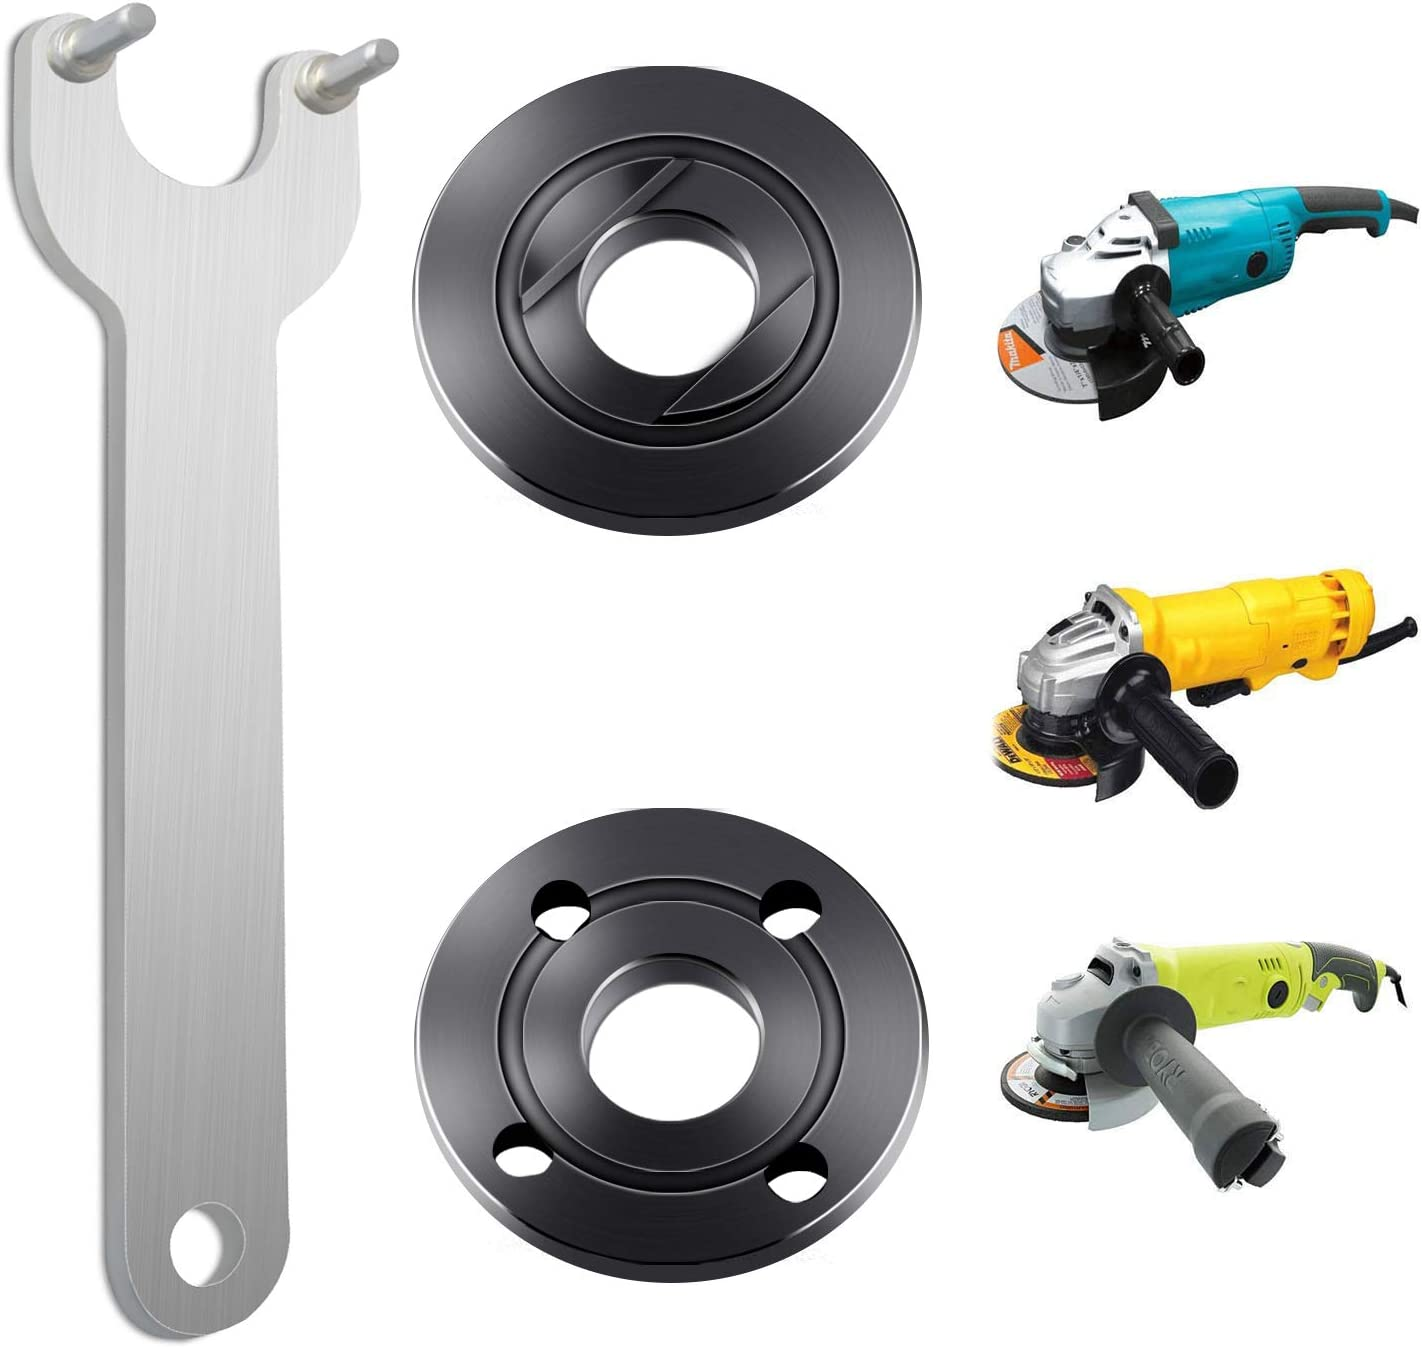 2 in 1 Power Tool Angle Grinder Metal Wrench Spanner Set Kit